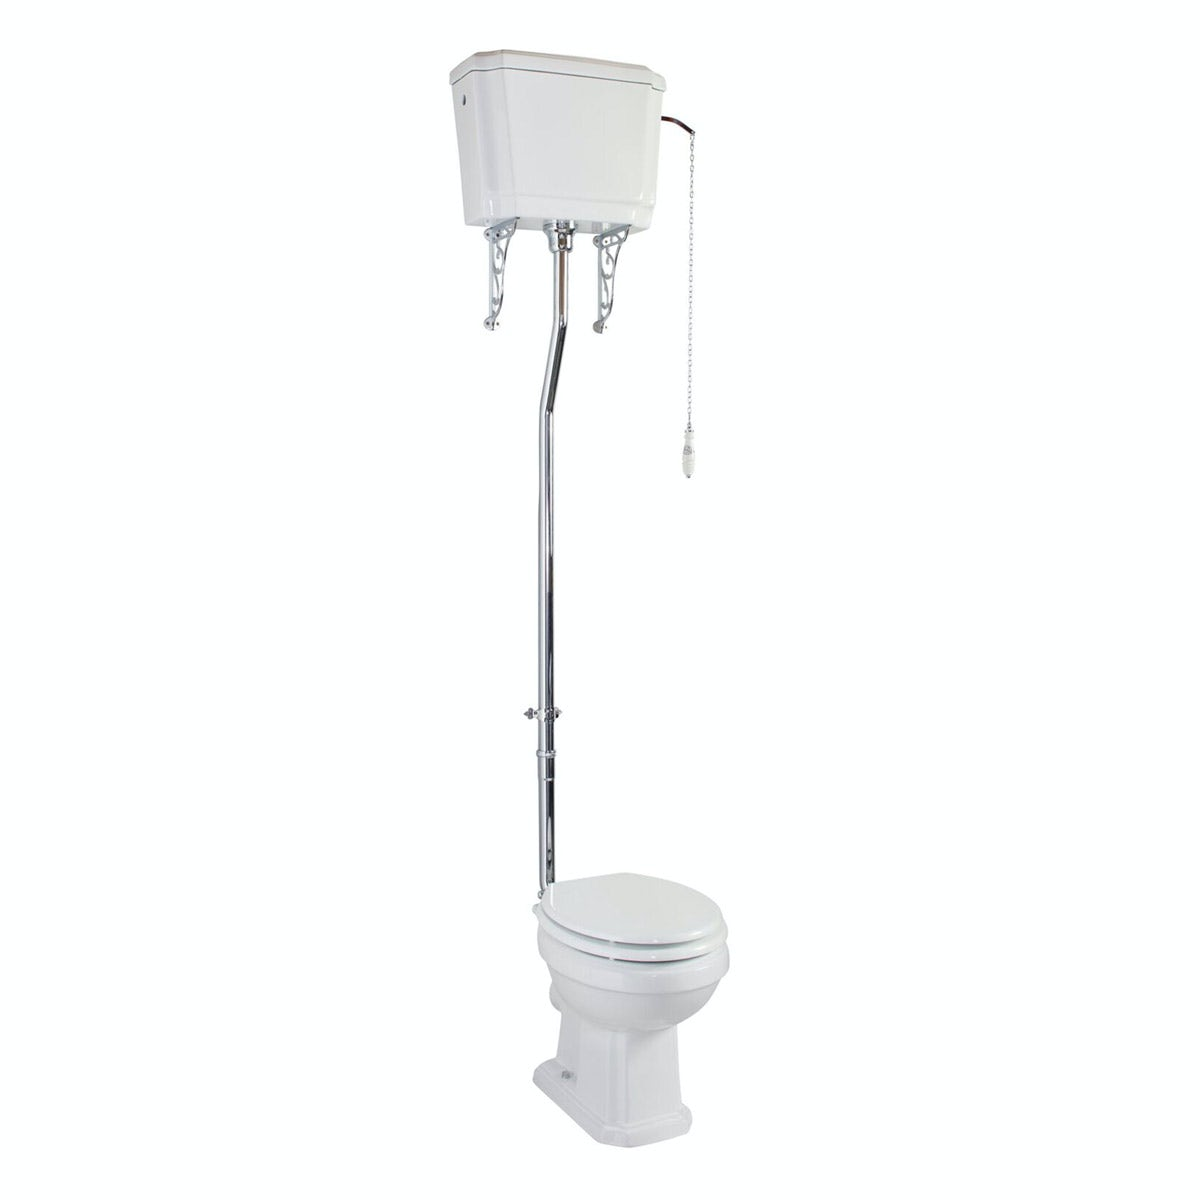 The Bath Co. Cromford high level toilet inc white soft close seat